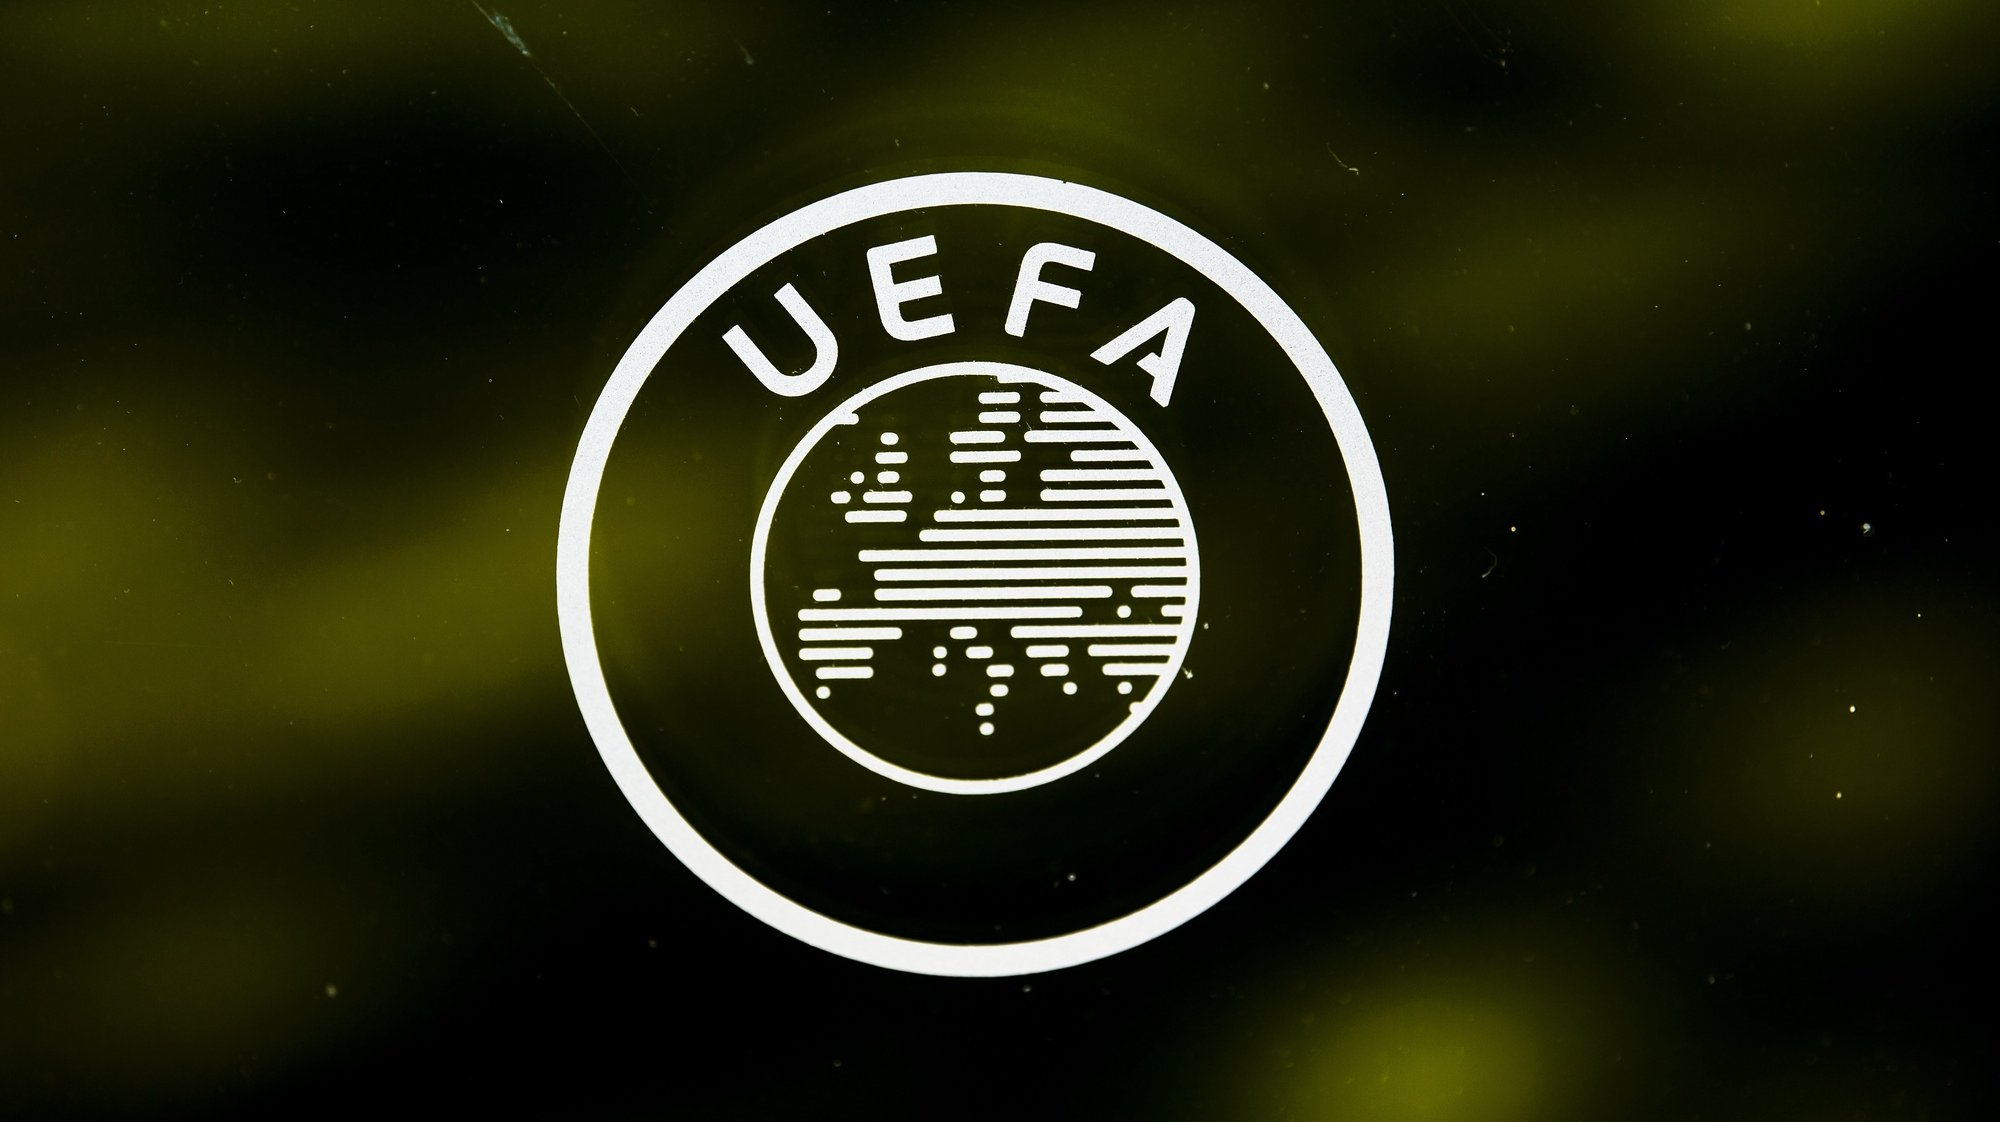 epa08389061 (FILE) - A UEFA logo is pictured through a window prior to the UEFA Europa League 2019/20 Round of 16 draw, at the UEFA Headquarters in Nyon, Switzerland, 28 February 2020 (re-issued on 28 April 2020). UEFA has given 25 May 2020 as a deadline date to European Leagues to decide wether to cancel or restart their seasons after the suspension amid COVID-19 coronavirus pandemic. UEFA's president Aleksander Ceferin explained that 'National Associations and/or Leagues should communicate to UEFA by 25 May 2020 the planned restart of their domestic competitions'. In case of cancelation 'UEFA would require the National Association to explain the special circumstances justifying such premature termination and to select clubs for the UEFA club competitions 2020/21 on the basis of sporting merit in the 2019/20 domestic competitions'.  EPA/JEAN-CHRISTOPHE BOTT *** Local Caption *** 55997733